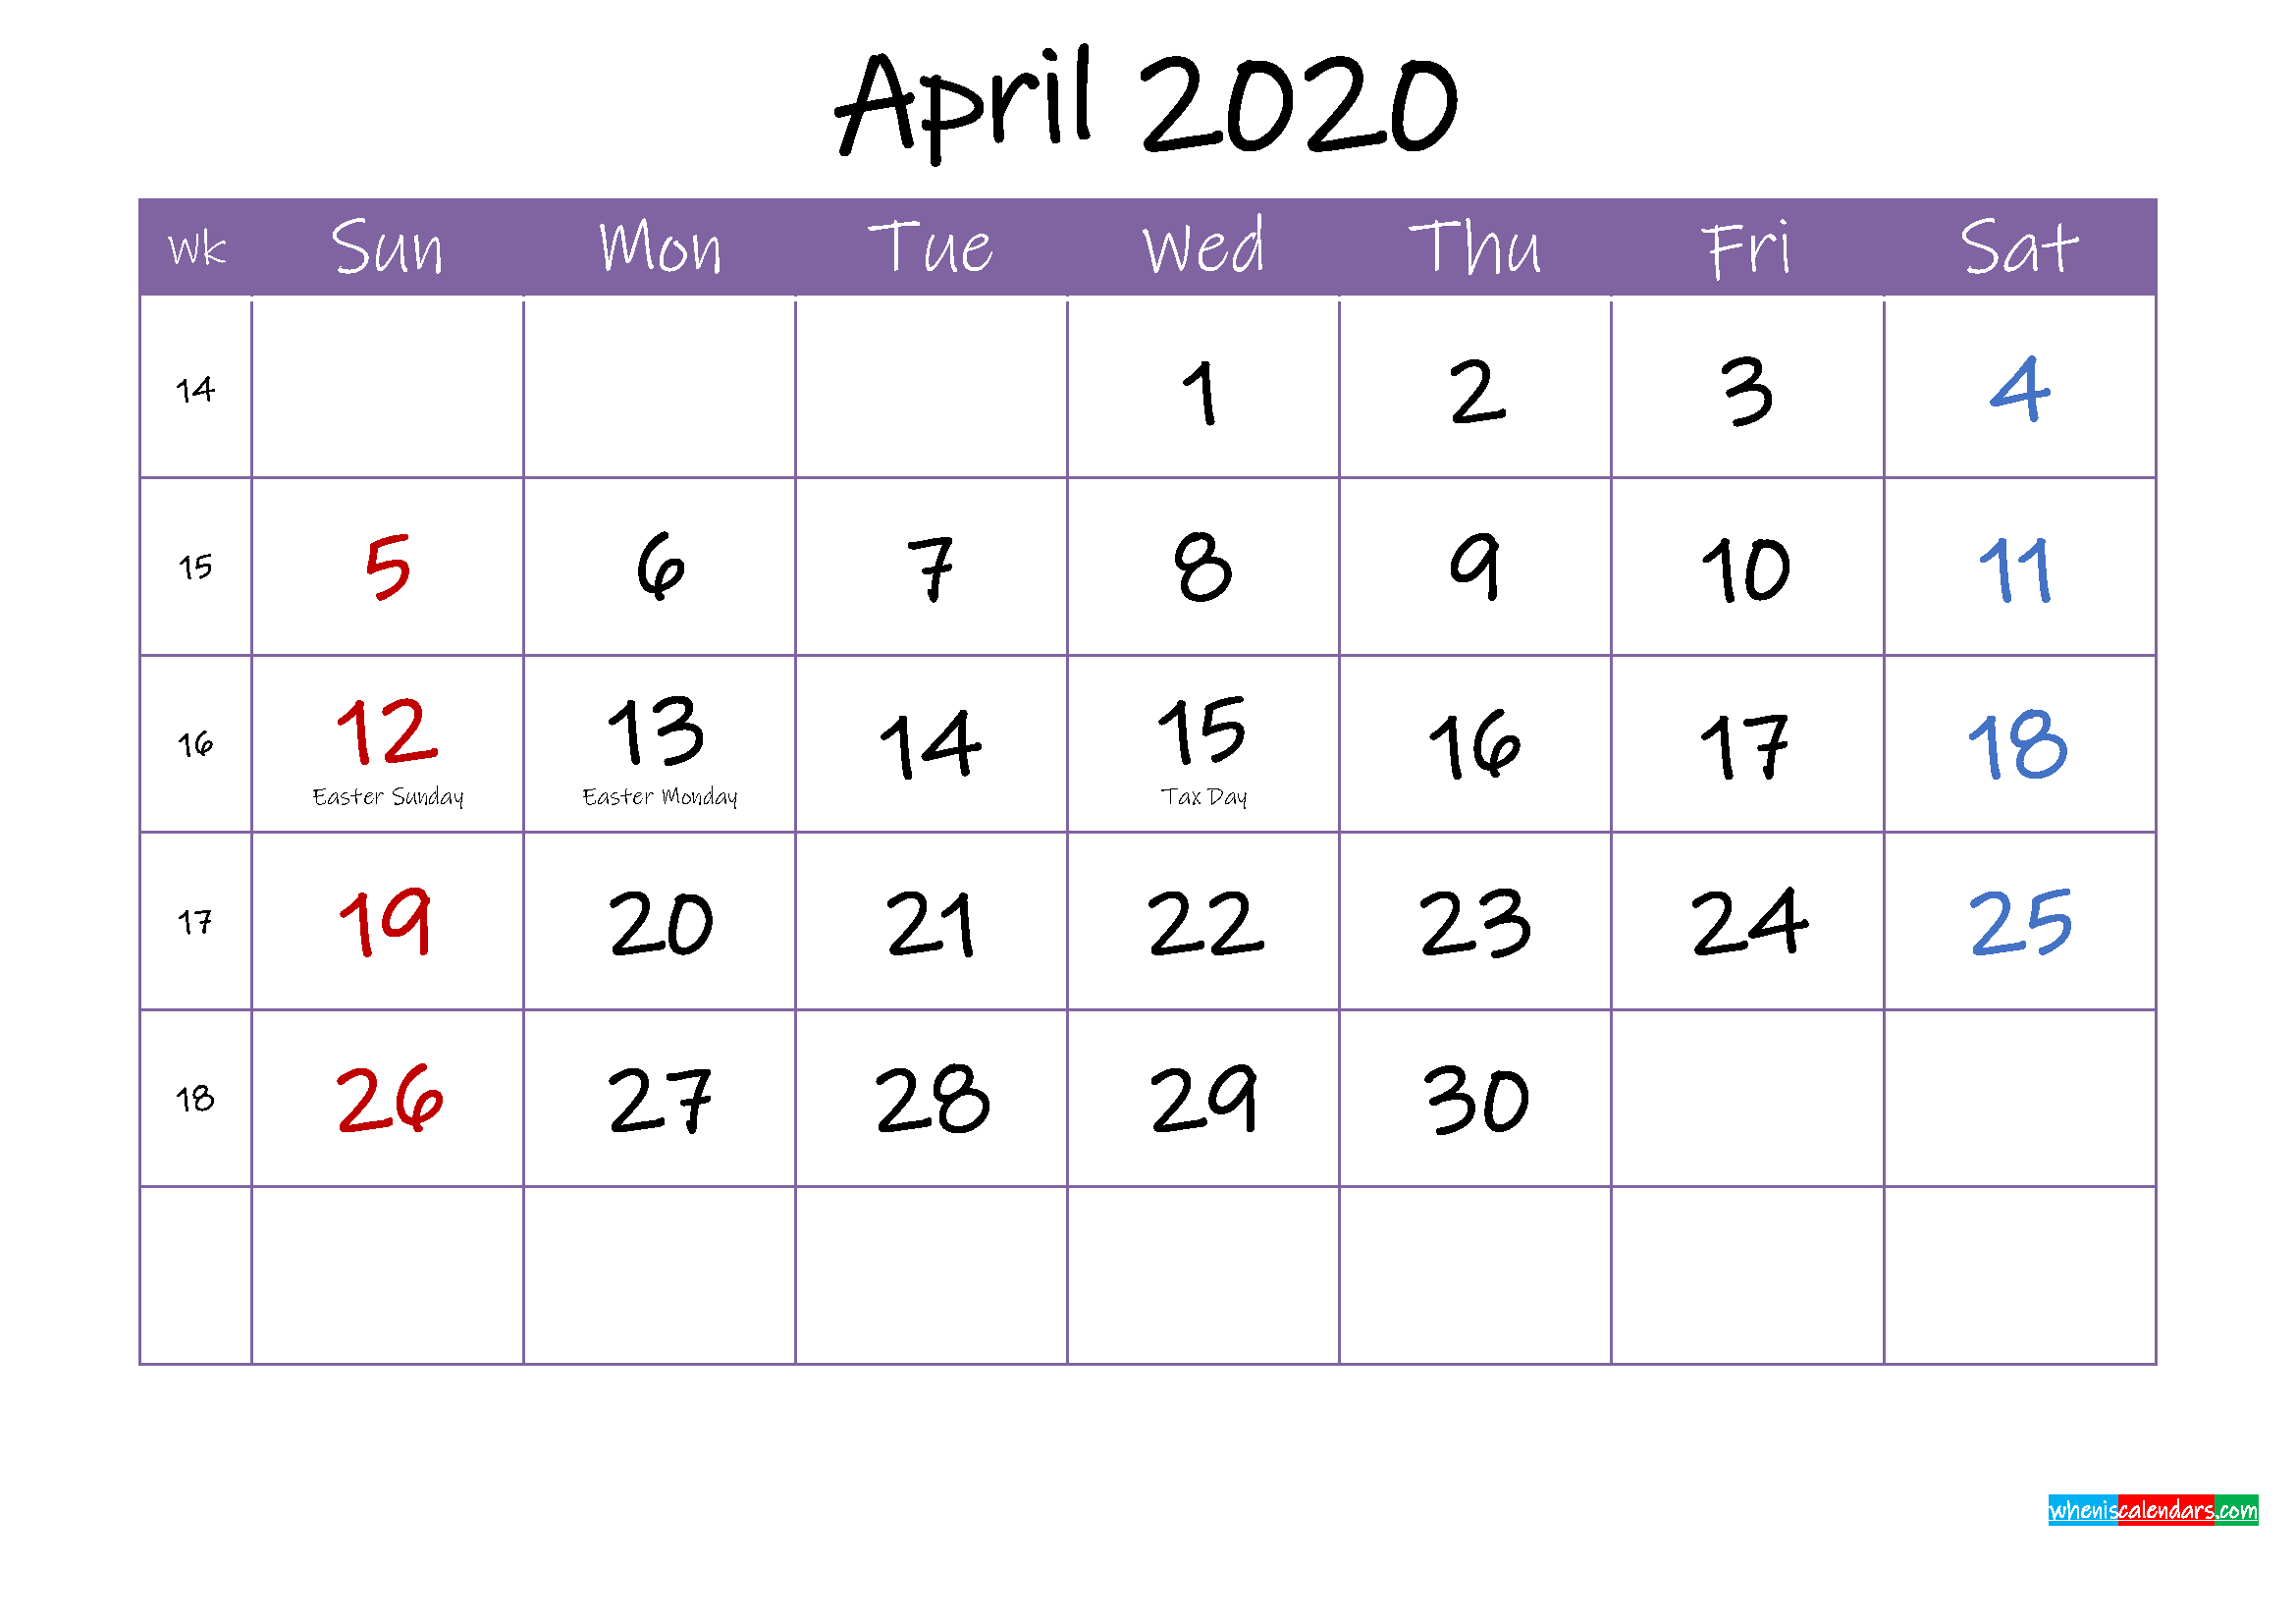 April 2020 Calendar with Holidays Printable